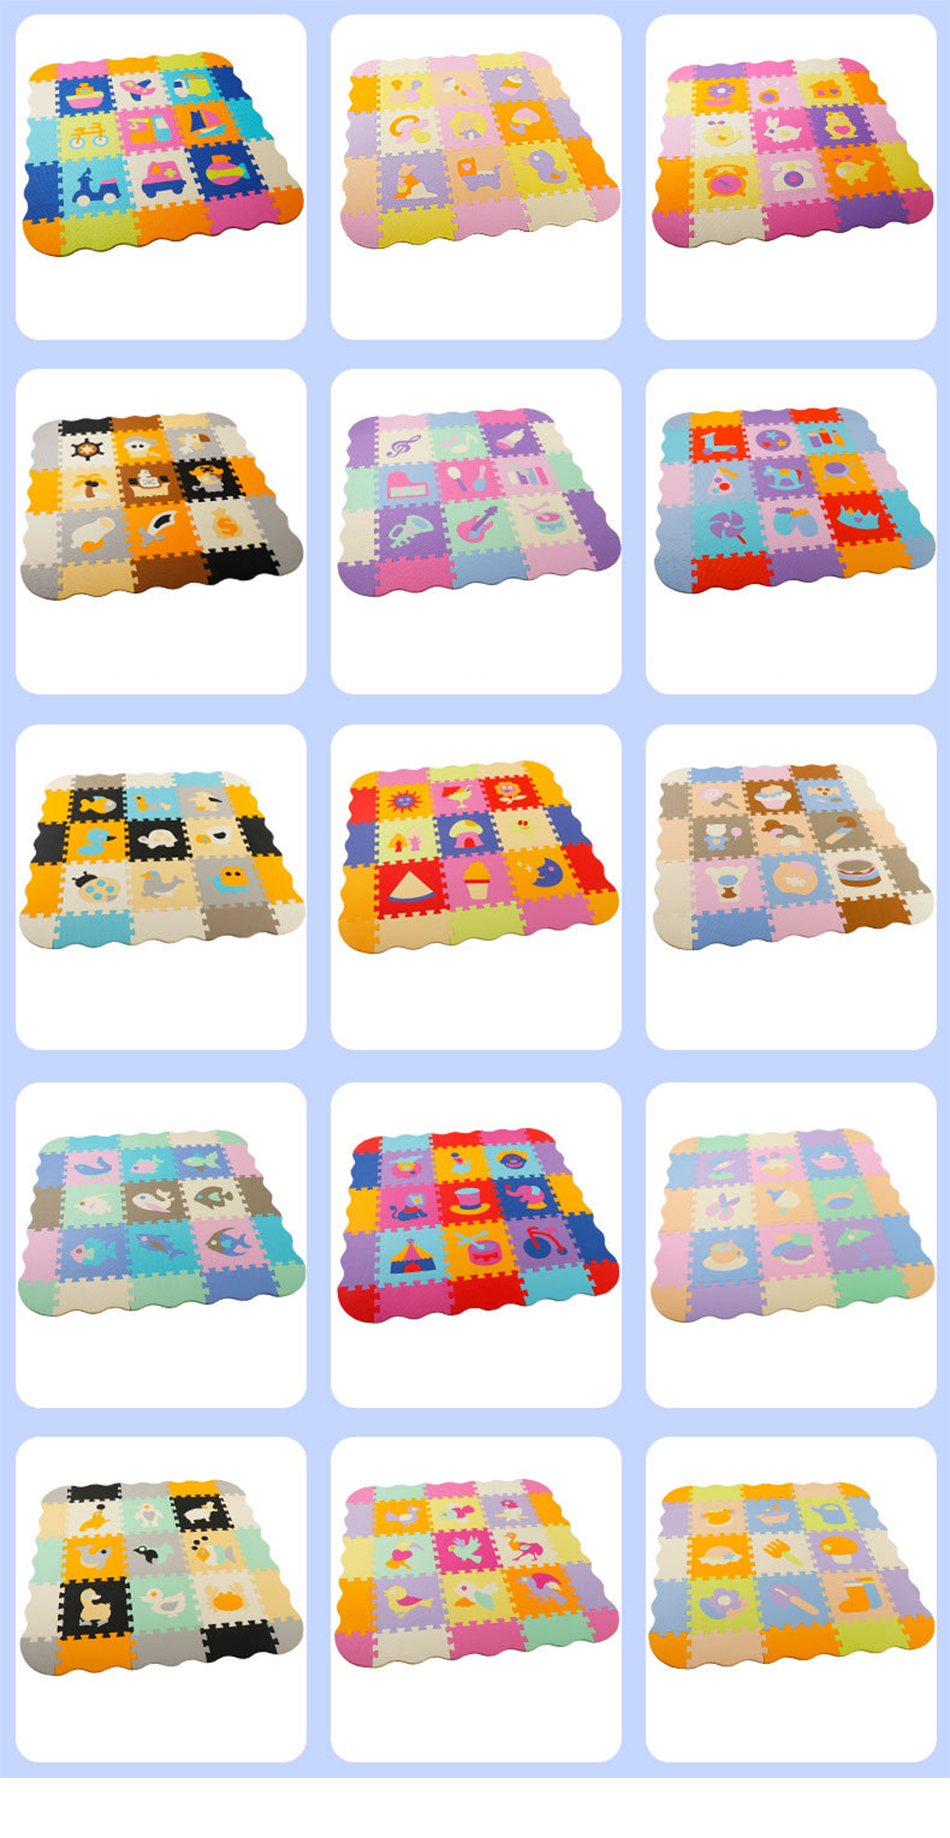 Hc5a301b9ac4a4752abd7e03fdaa800b8D 25Pcs Kids Toys EVA Children's mat Foam Carpets Soft Floor Mat Puzzle Baby Play Mat Floor Developing Crawling Rugs With Fence